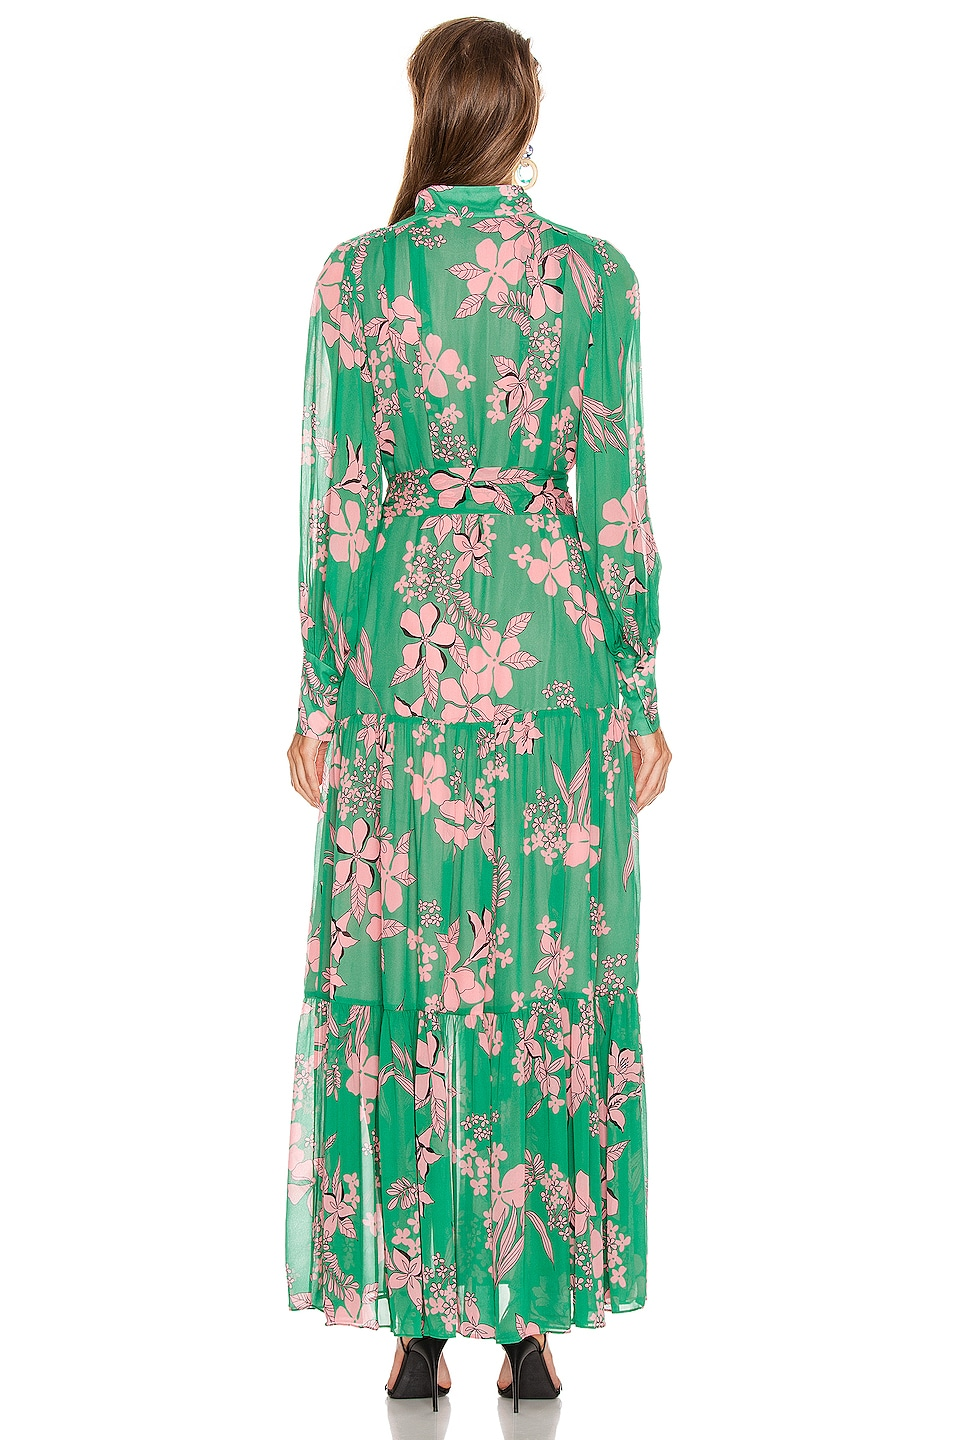 Image 3 of Alexis Rhoda Dress in Island Floral